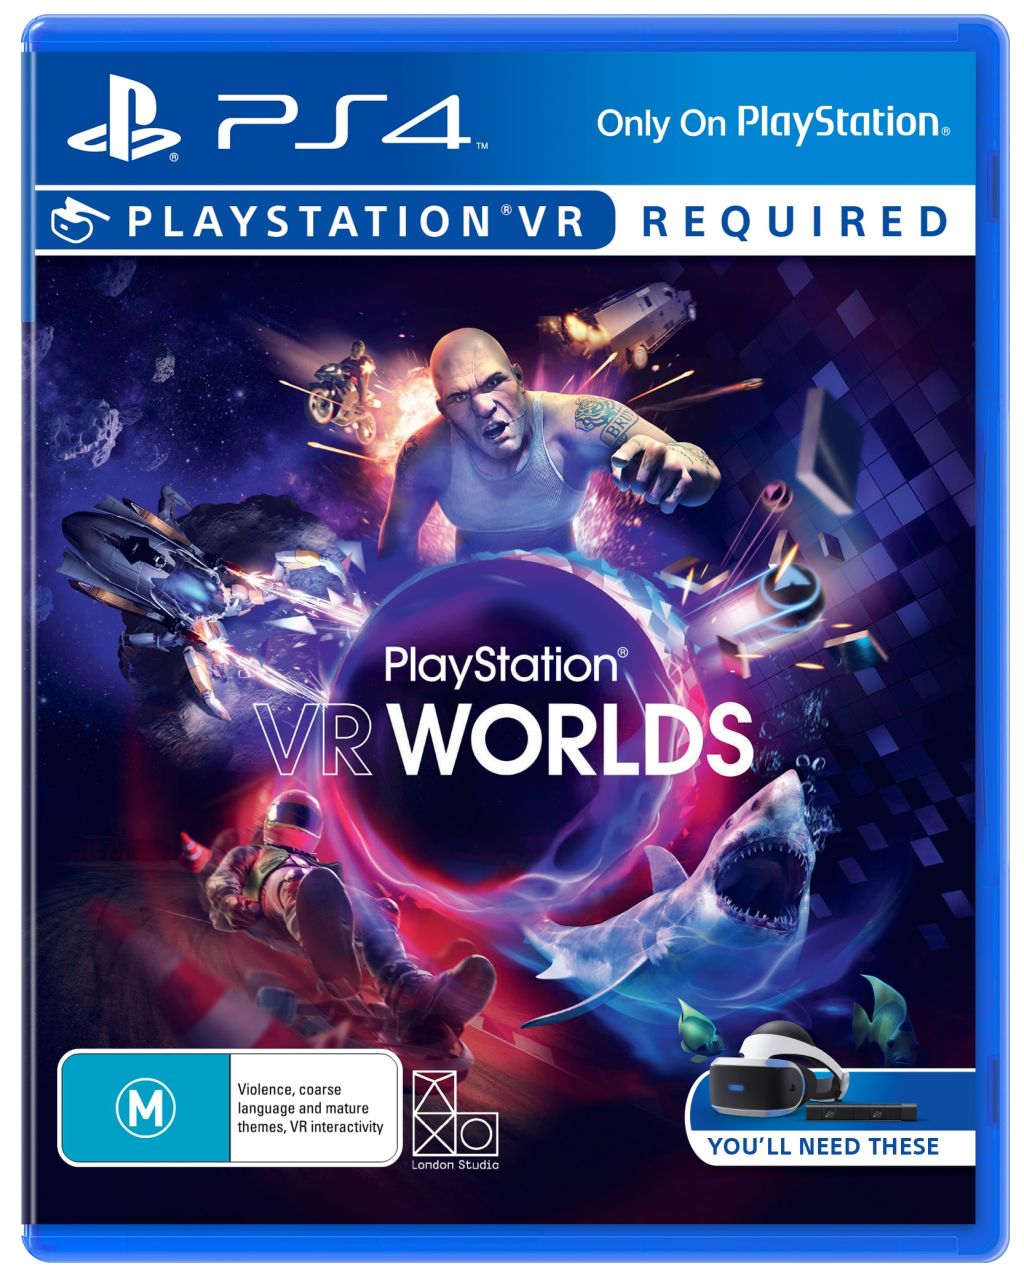 sony-ps4-playstation-vr-worlds-game-9854357